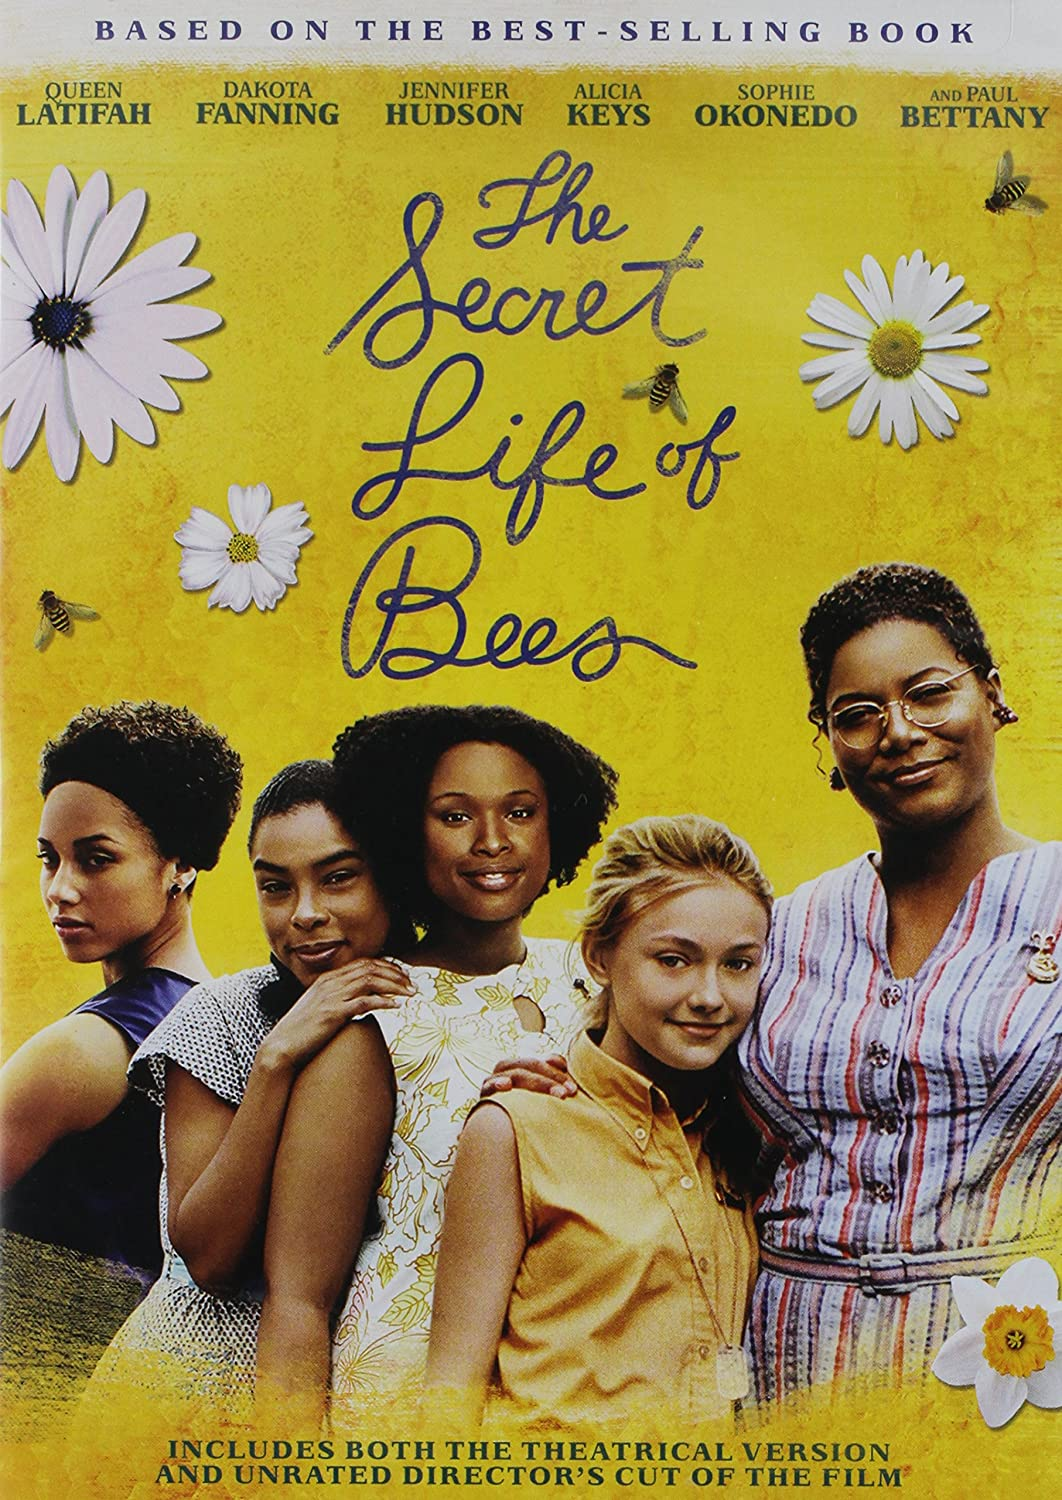 an analysis of the book the secret life of bees Summary of the secret life of bees by sue monk kidd includes analysis preview:  the secret life of bees by sue monk kidd is a coming-of-age novel narrated by 14-year-old lily owens, a young white teen who runs away from home.